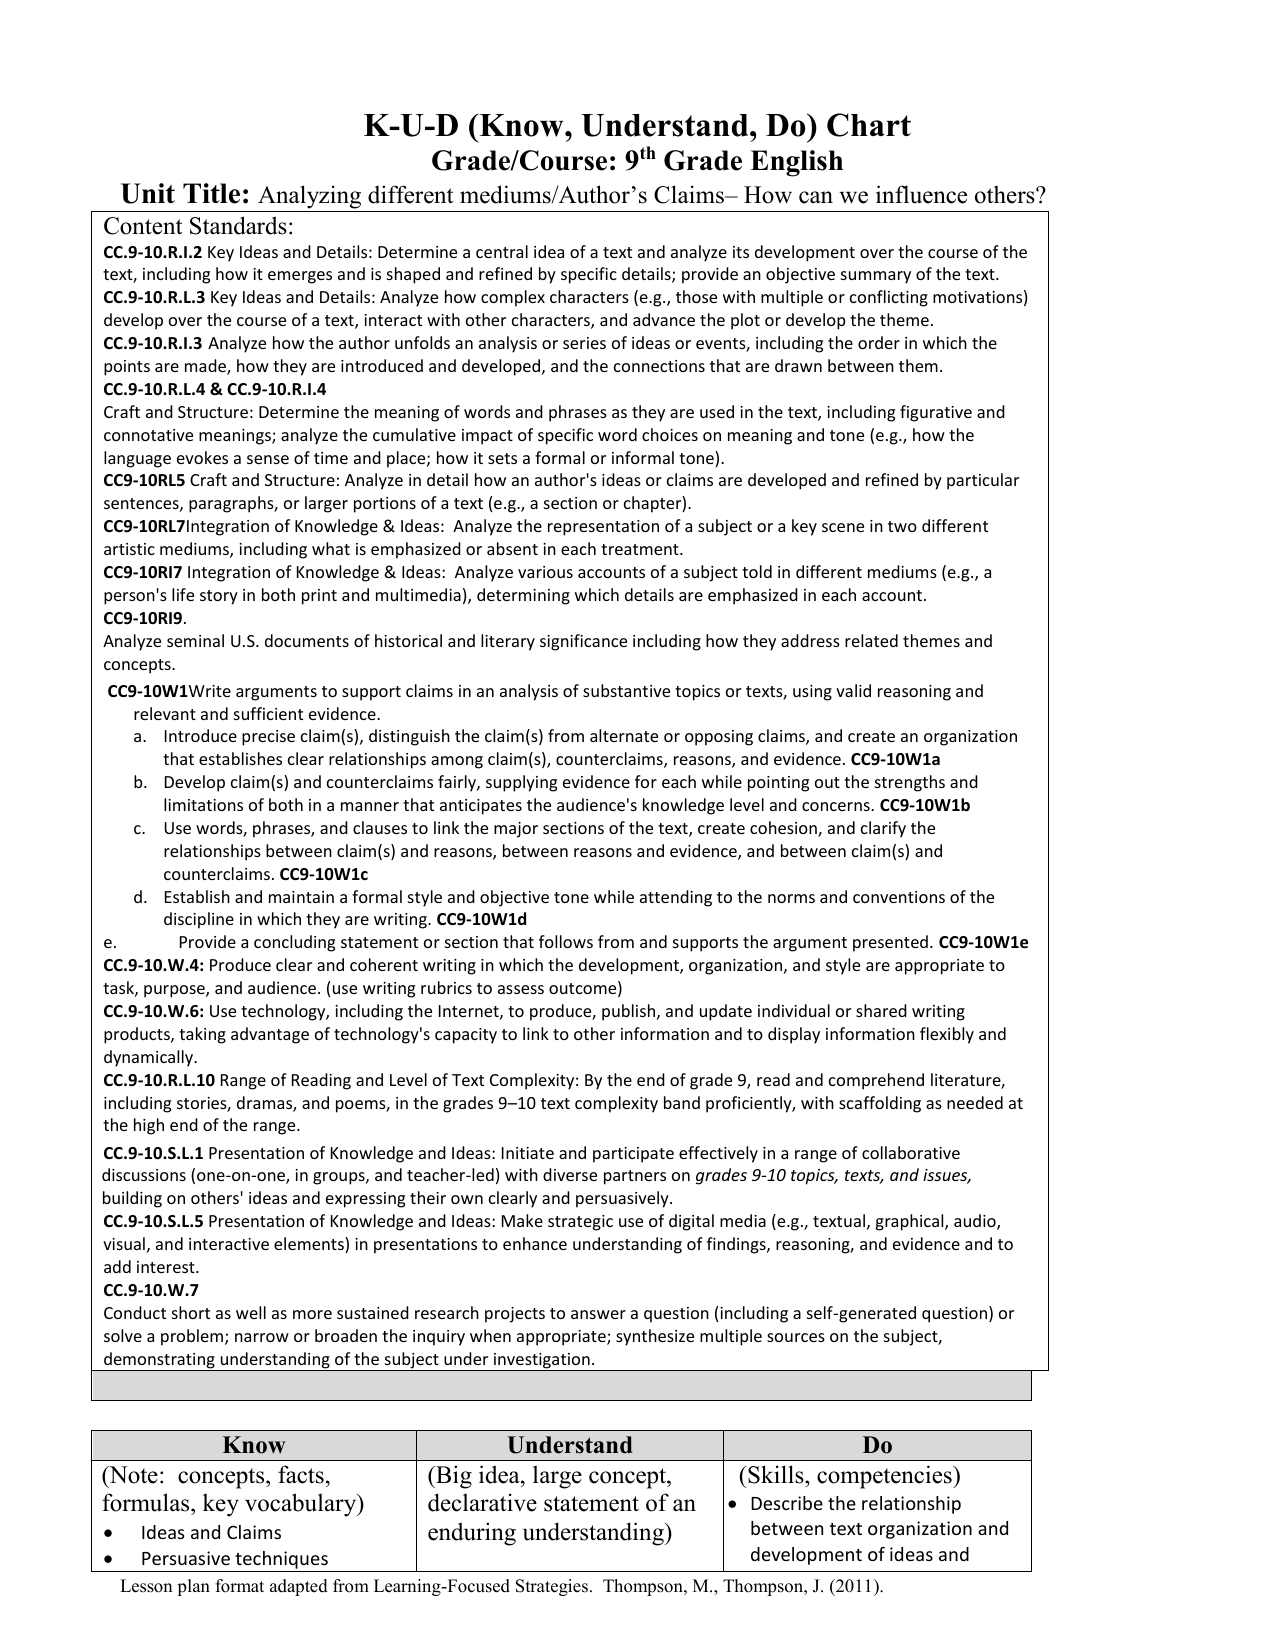 kud lesson plan template.html